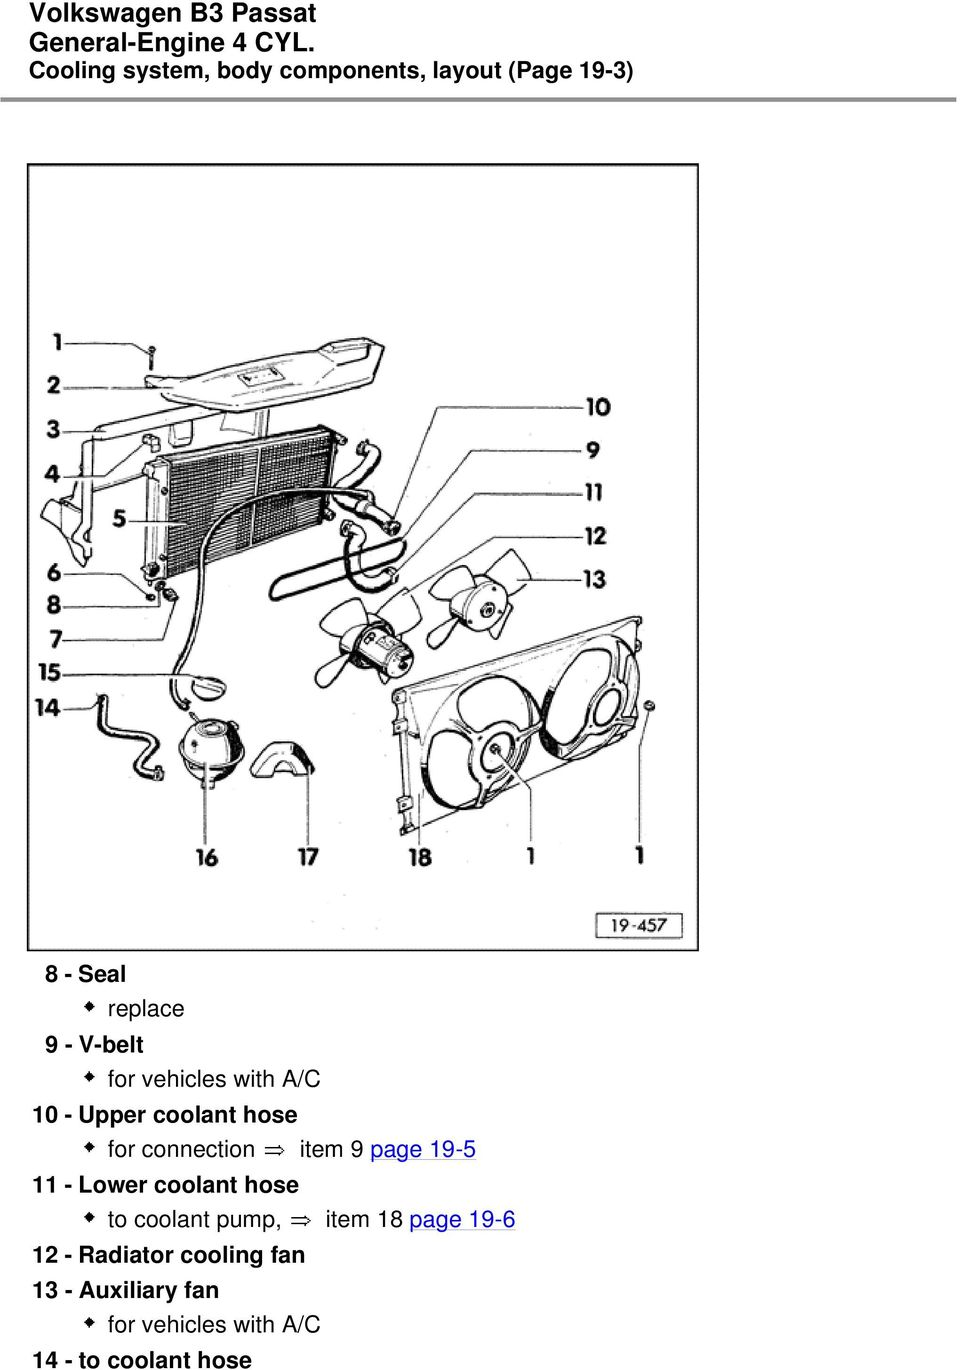 page 19-5 11 - Lower coolant hose to coolant pump, item 18 page 19-6 12 -